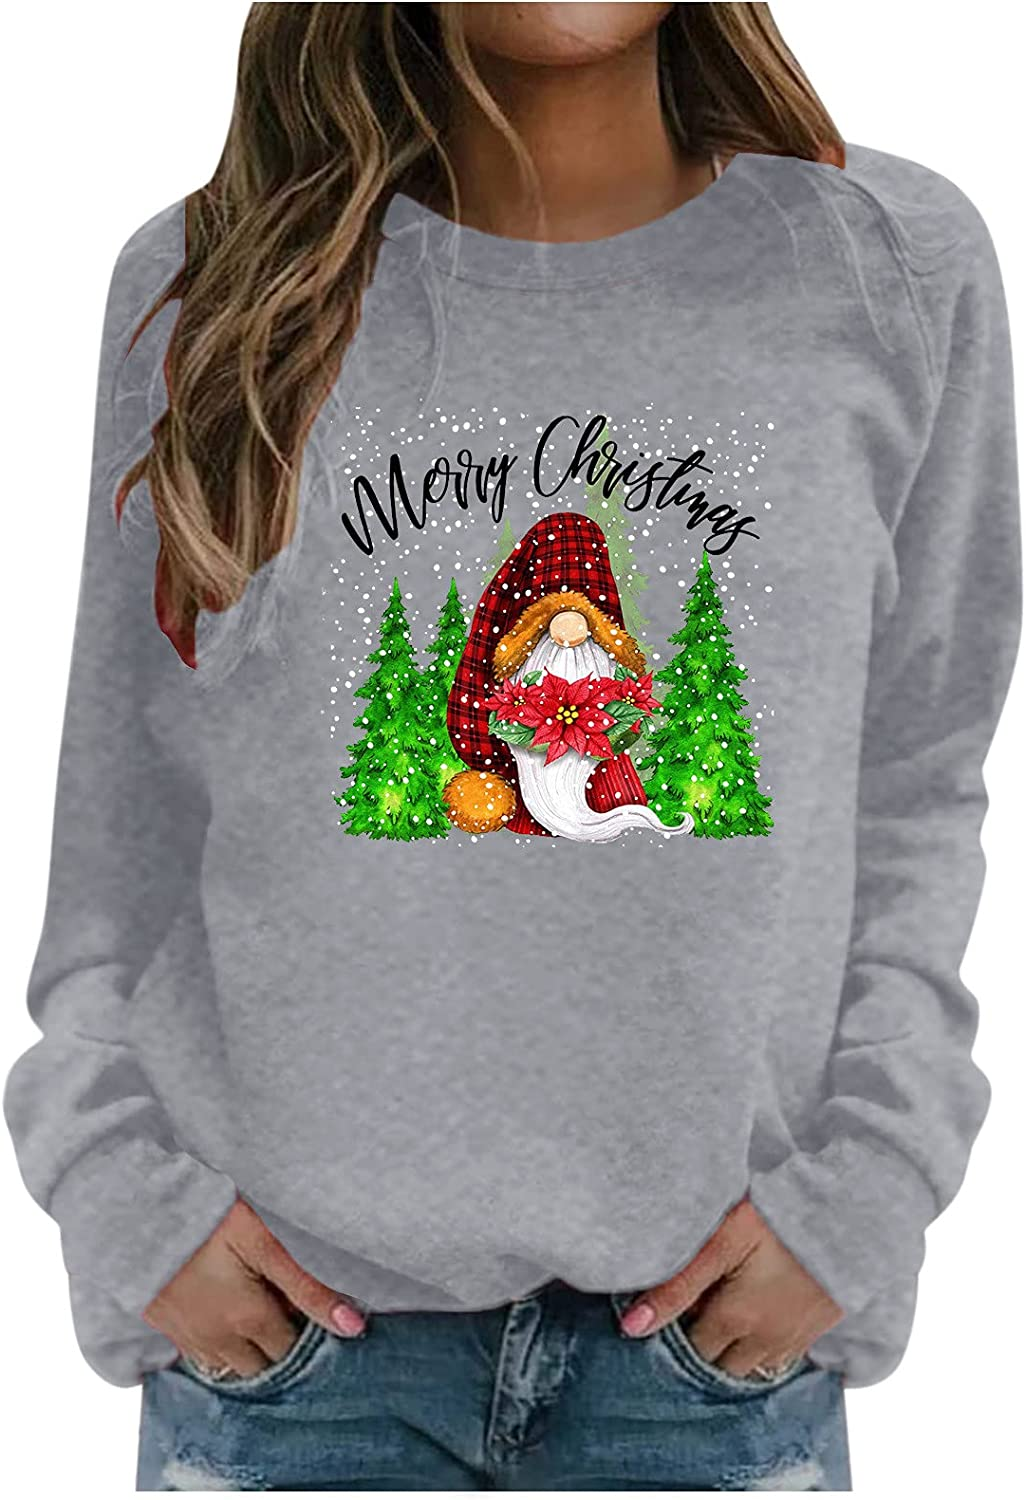 Christmas Gnome Shirts for Women Plus Size Crewneck Pullover Santa Claus Graphic Casual Holiday Sweatshirts Fall Tops